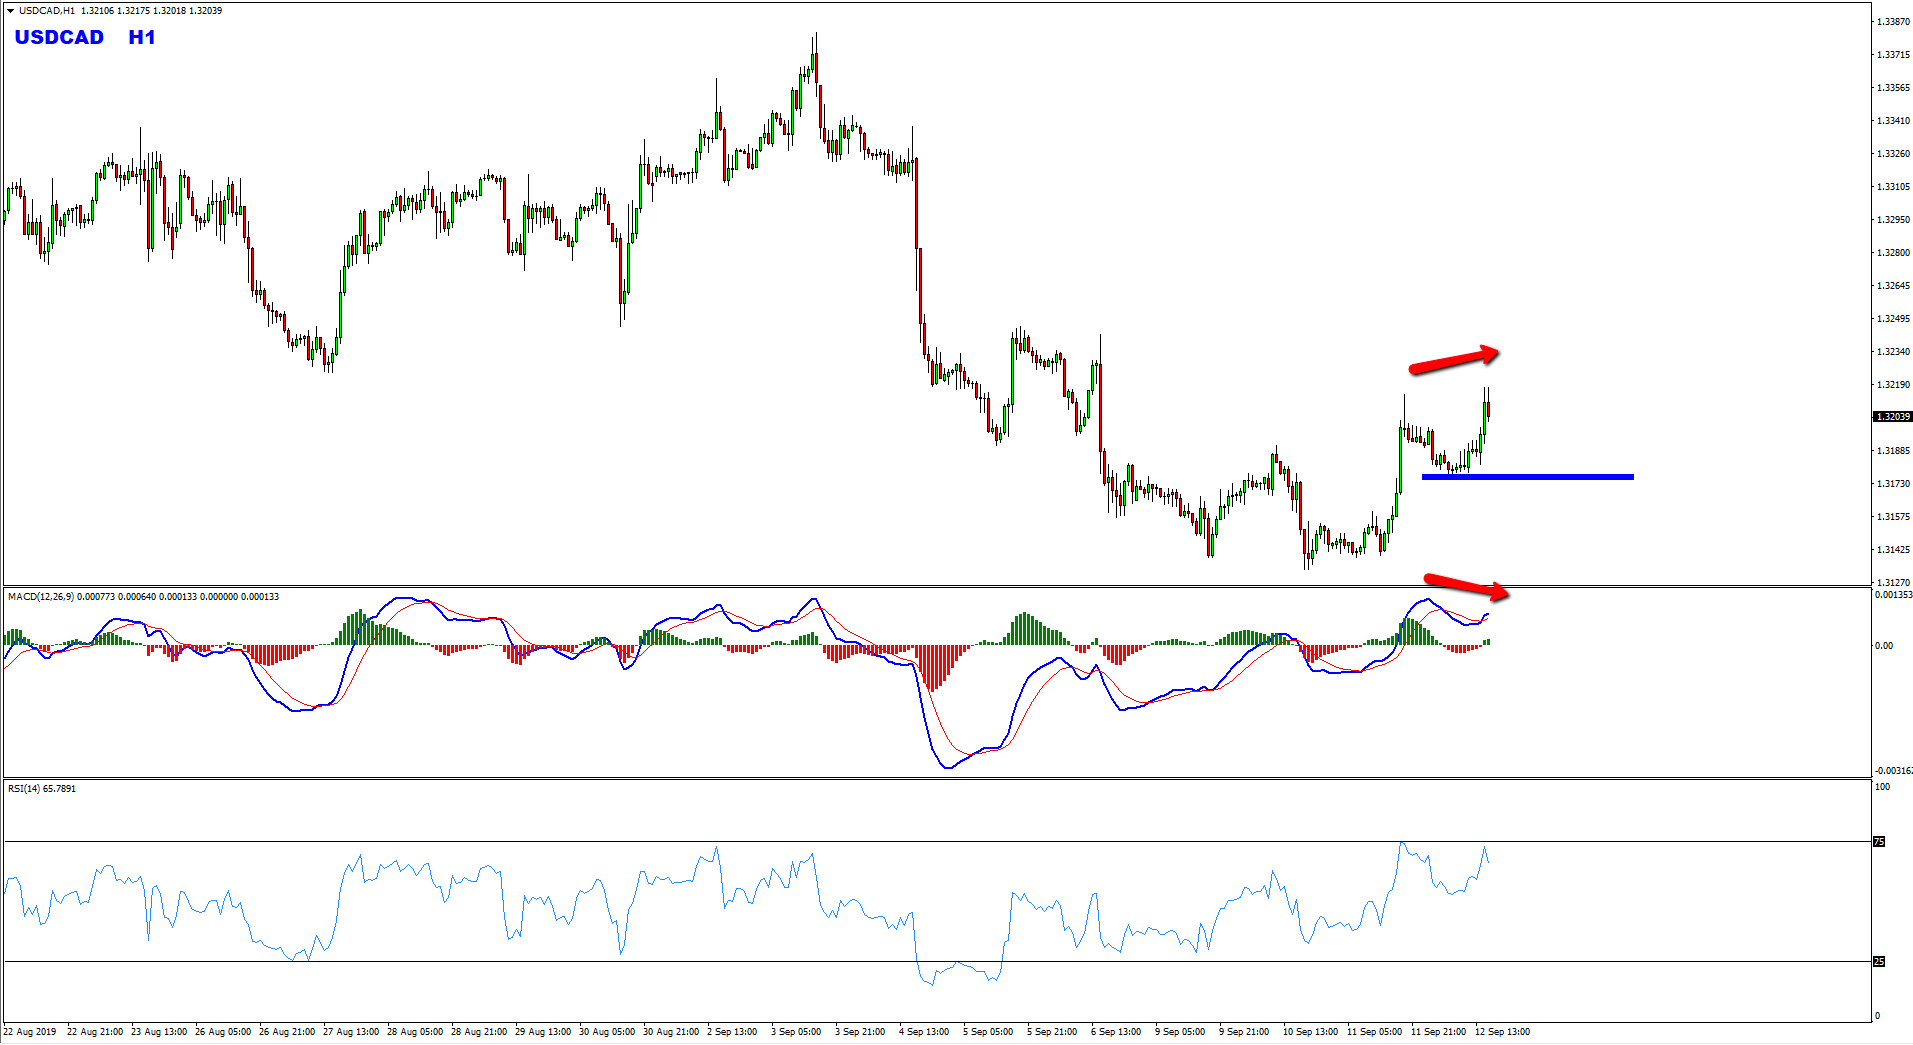 USDCAD Sell Structure Forming At The Moment